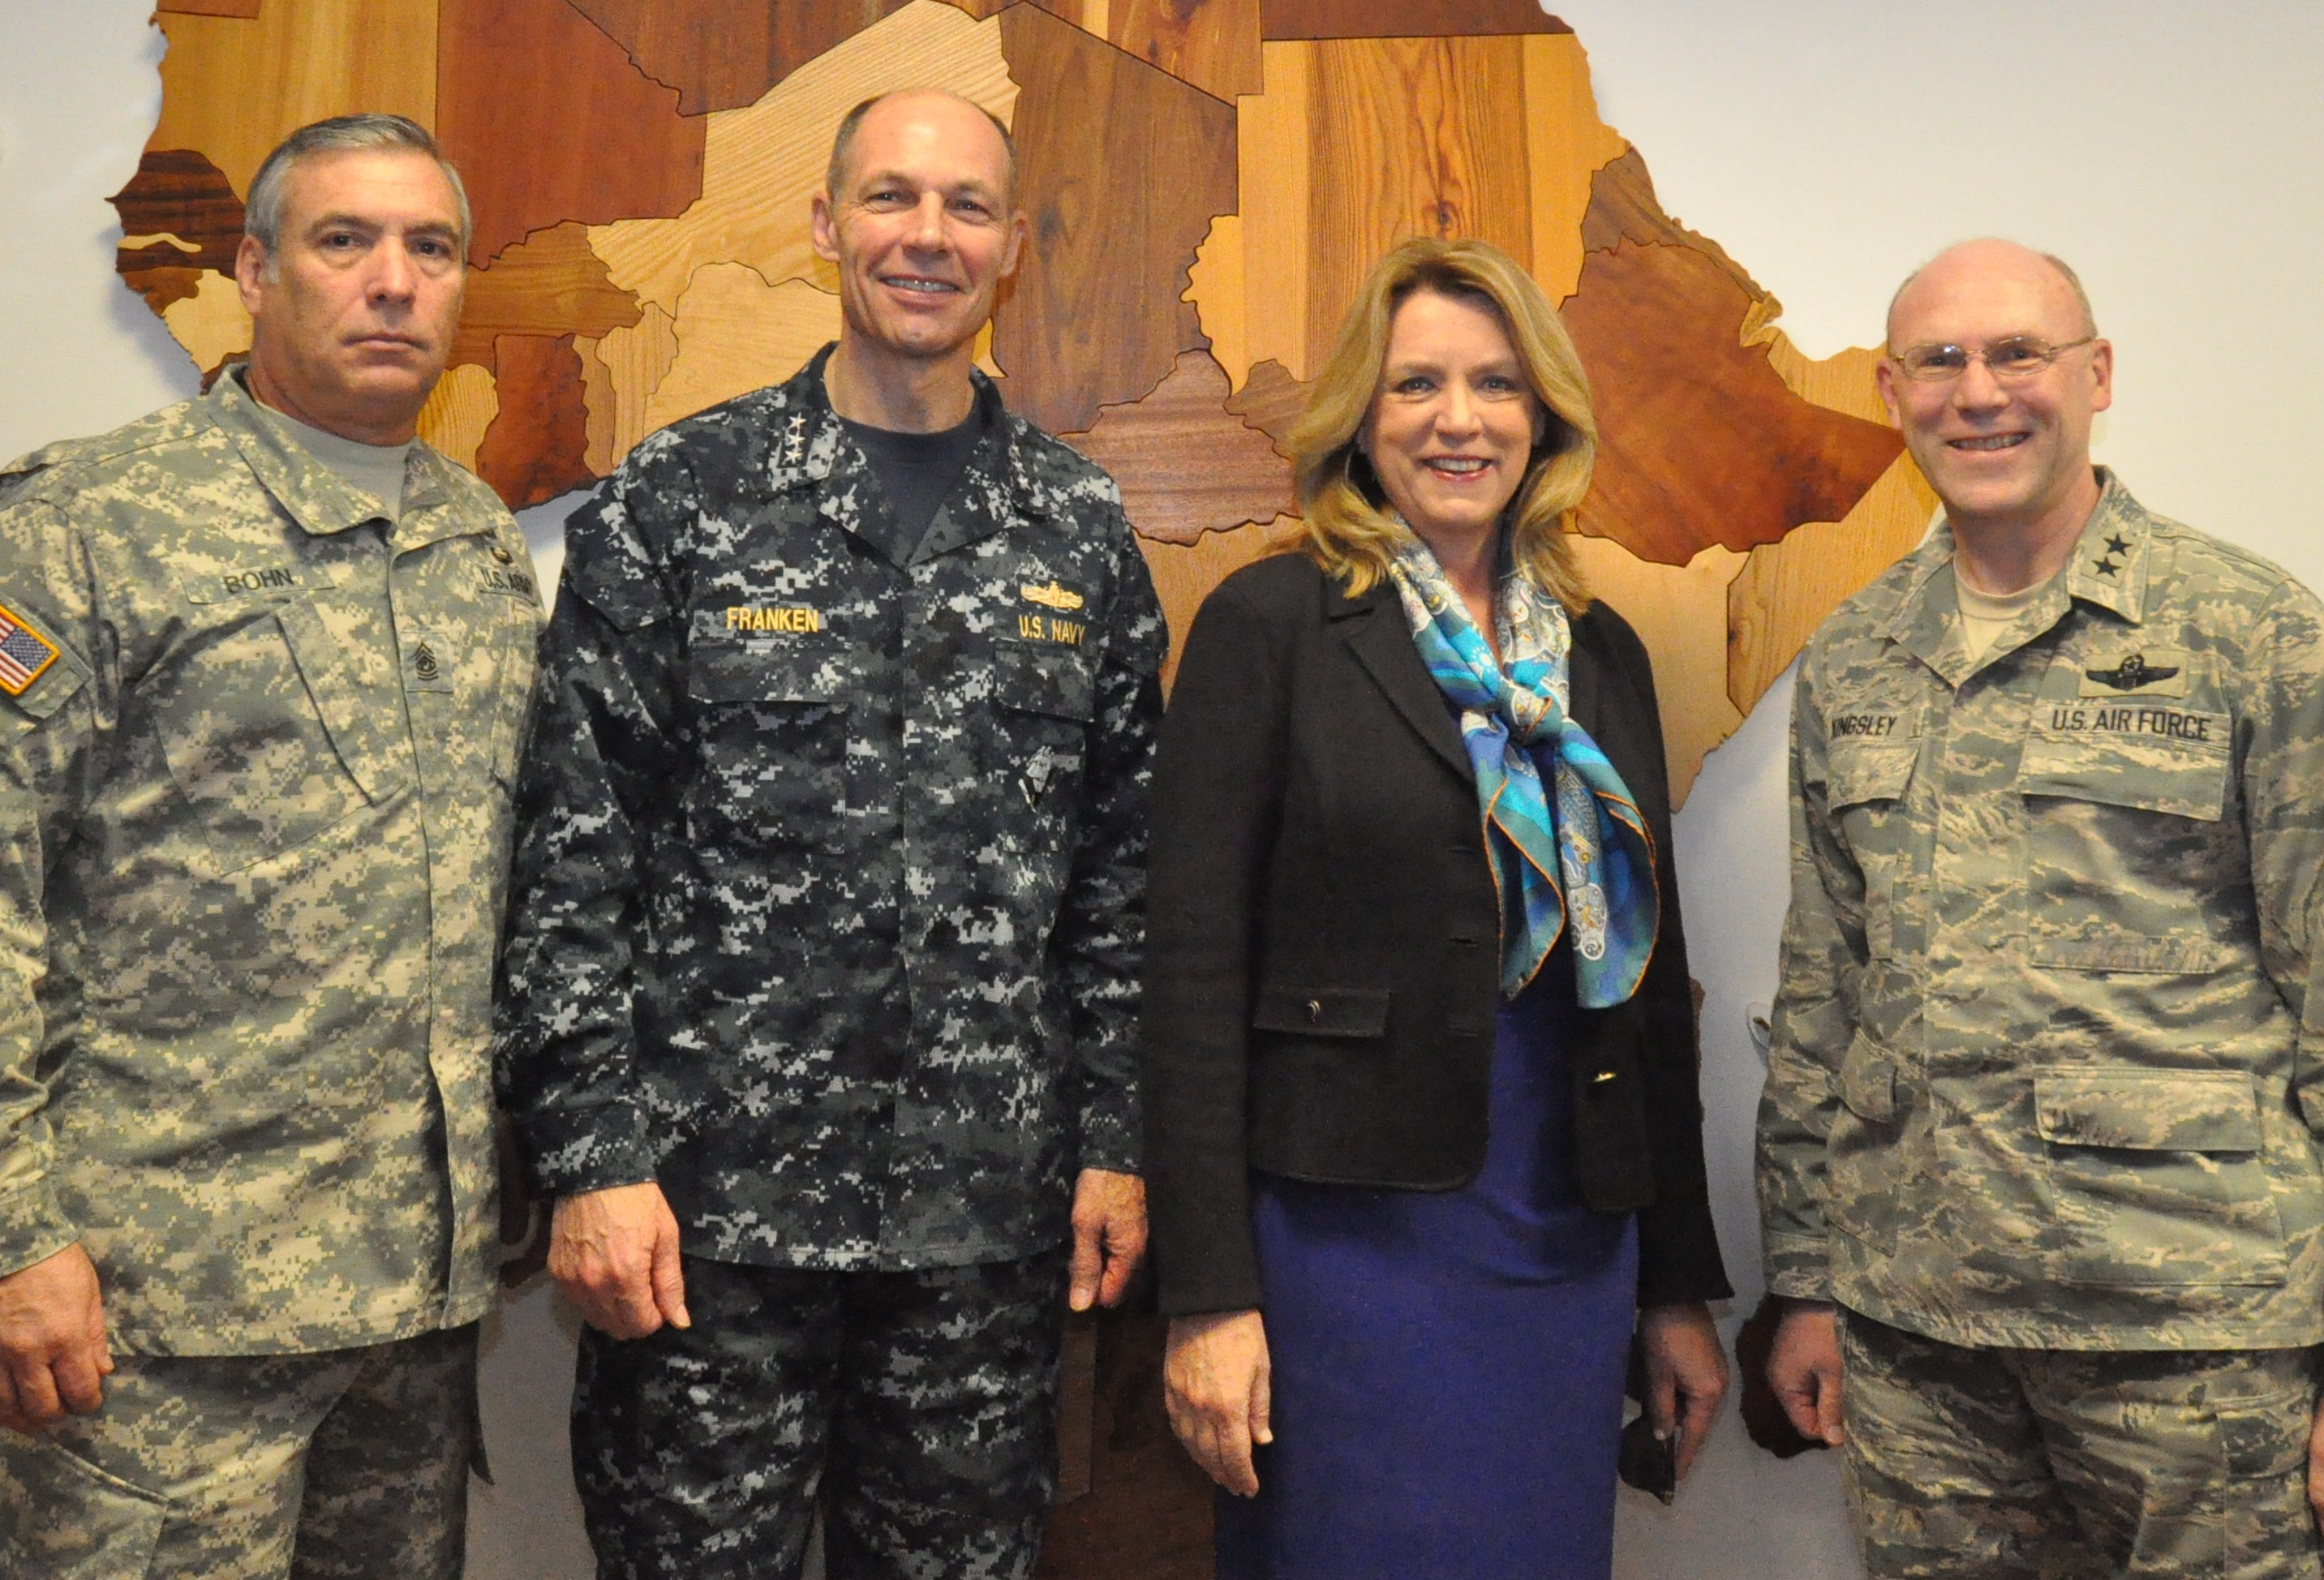 Secretary of the Air Force visits AFRICOM. Secretary of the Air Force Deborah Lee James poses with senior leaders of U.S. Africa Command at the command's headquarters, Nov. 18, 2015.  Pictured left to right: Senior Enlisted Leader, U.S. Army Command Sgt. Maj. Darrin Bohn; Deputy to the Commander for Military Operations, U.S. Navy Vice Adm. Michael Franken; Secretary James, and Chief of Staff, U.S. Air Force Maj. Gen. Michael Kingsley. (U.S. Africa Command photo by Brenda Law/RELEASED)